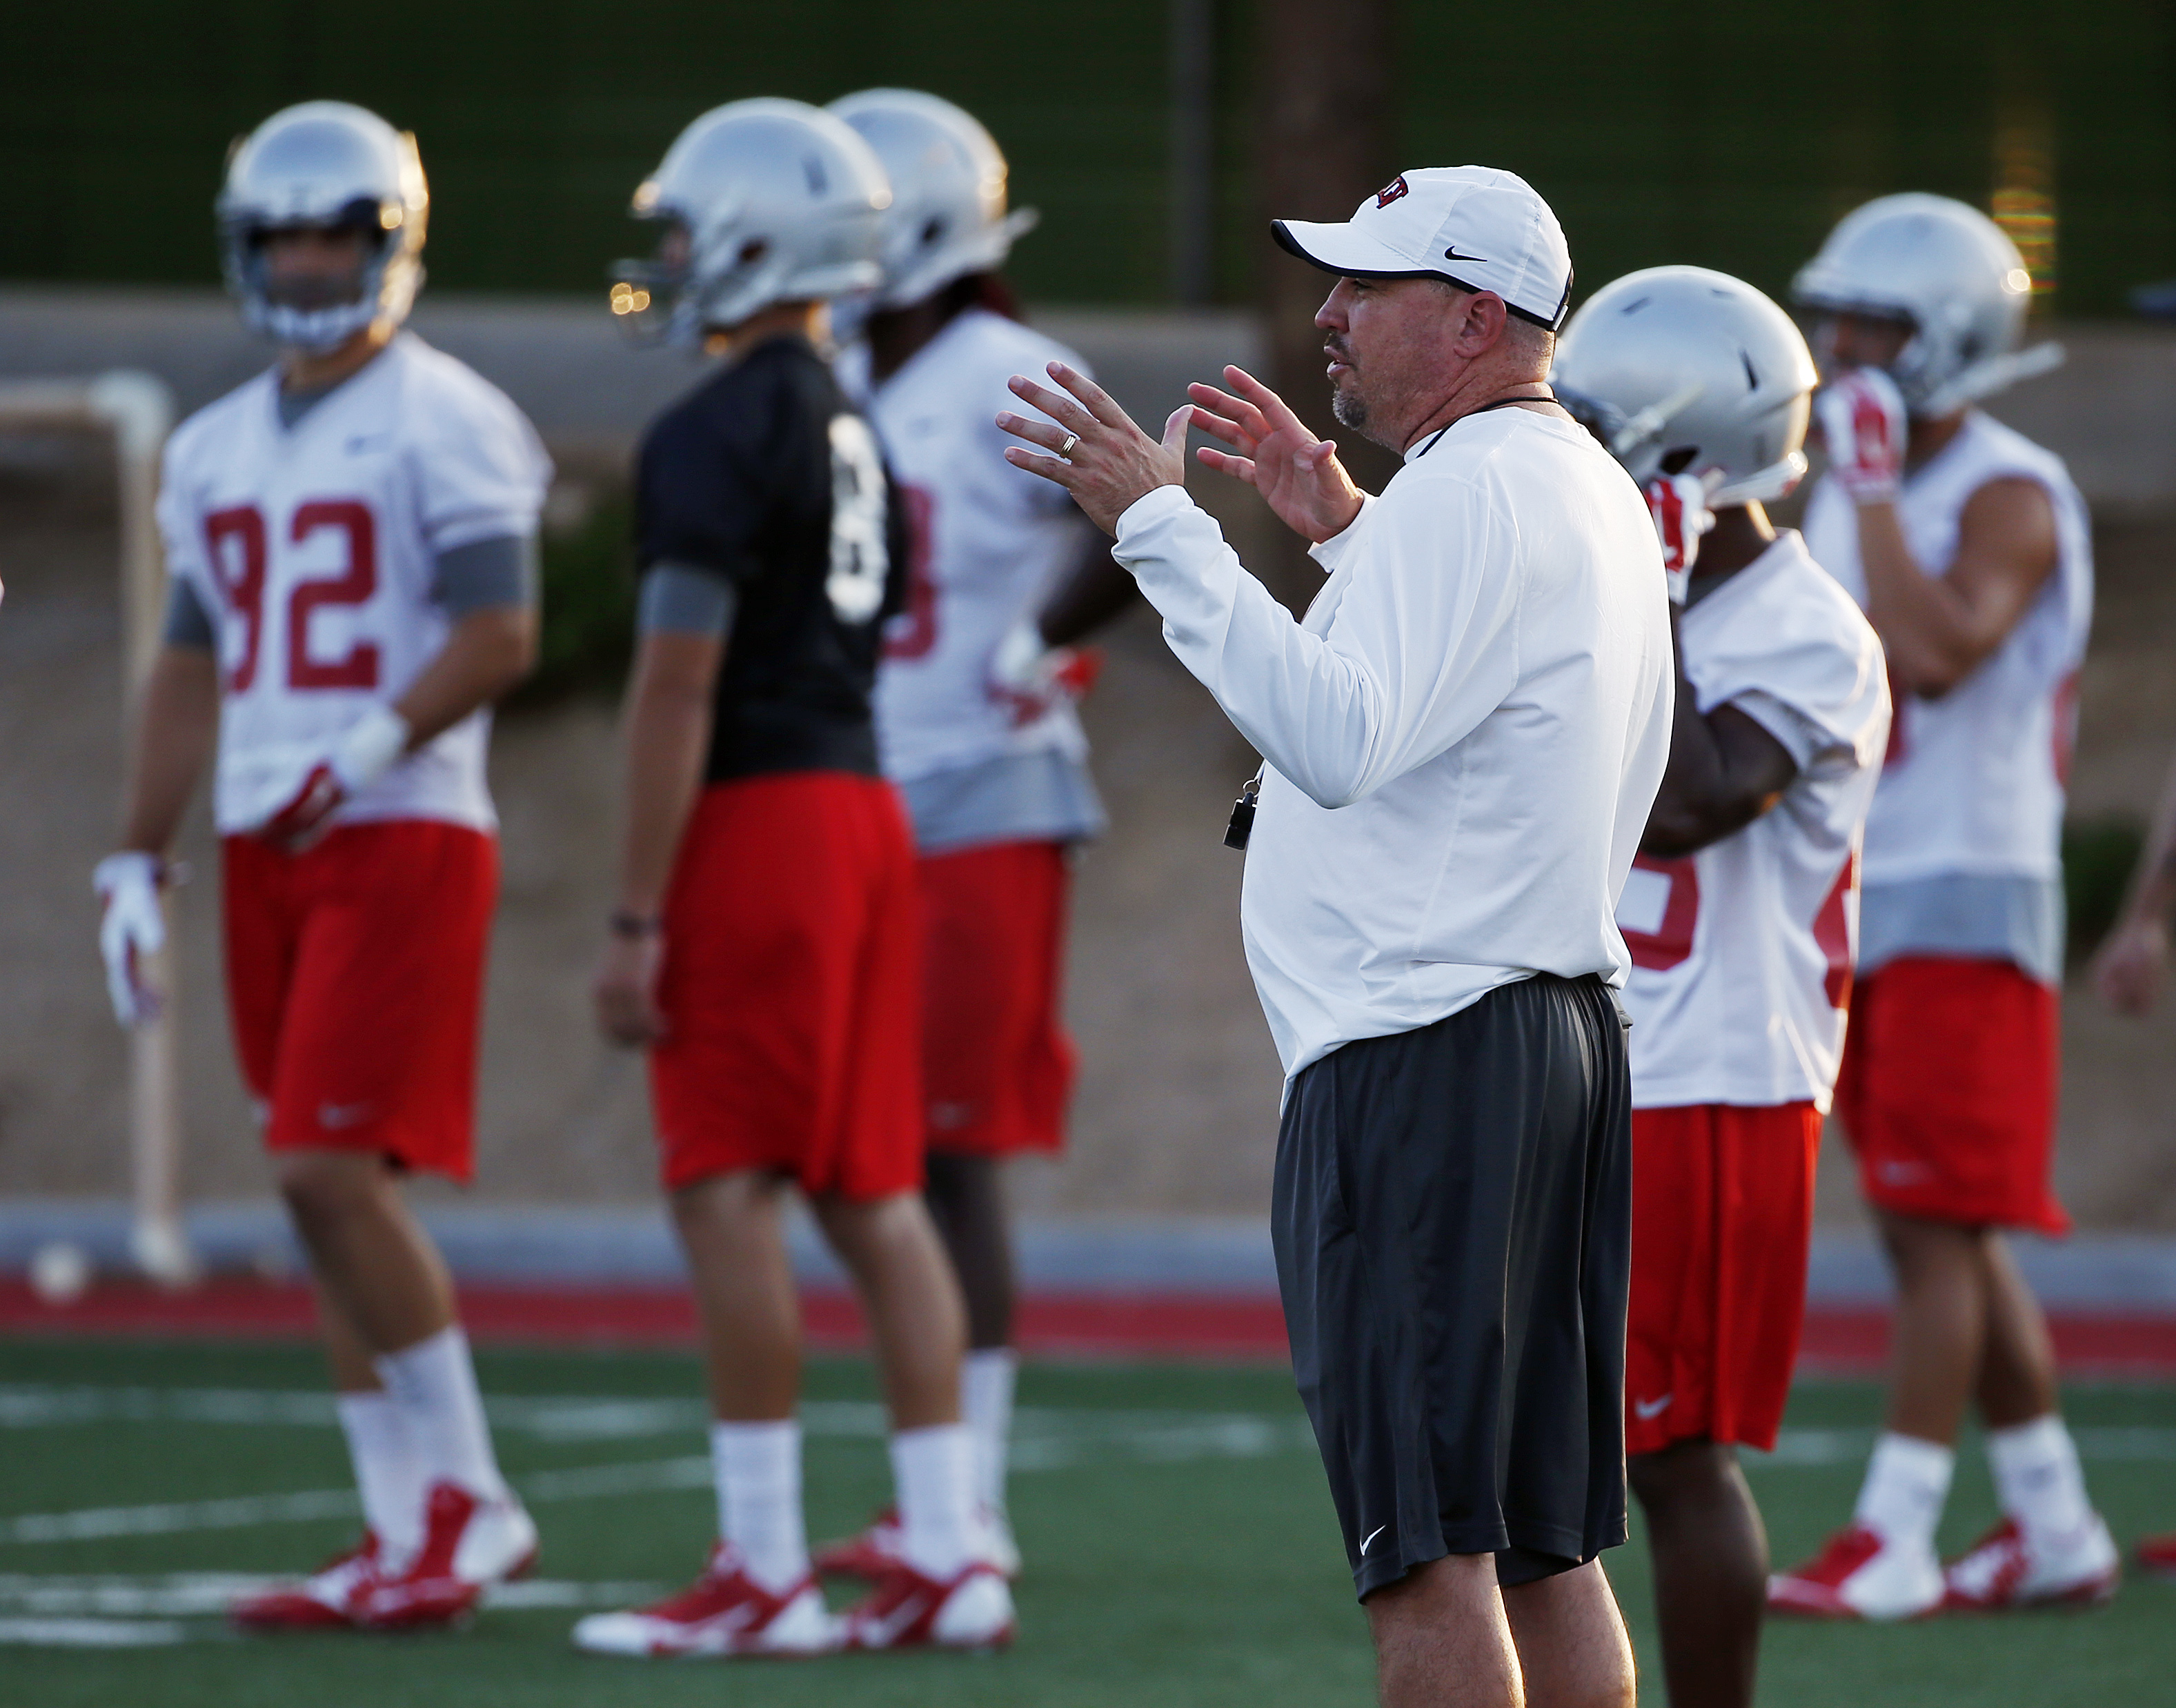 In this Aug. 20, 2015, photo, UNLV head football coach Tony Sanchez speaks during practice in Las Vegas. Sanchez has made the rare jump directly from coaching high school to a head coach position at a college program. (AP Photo/John Locher)